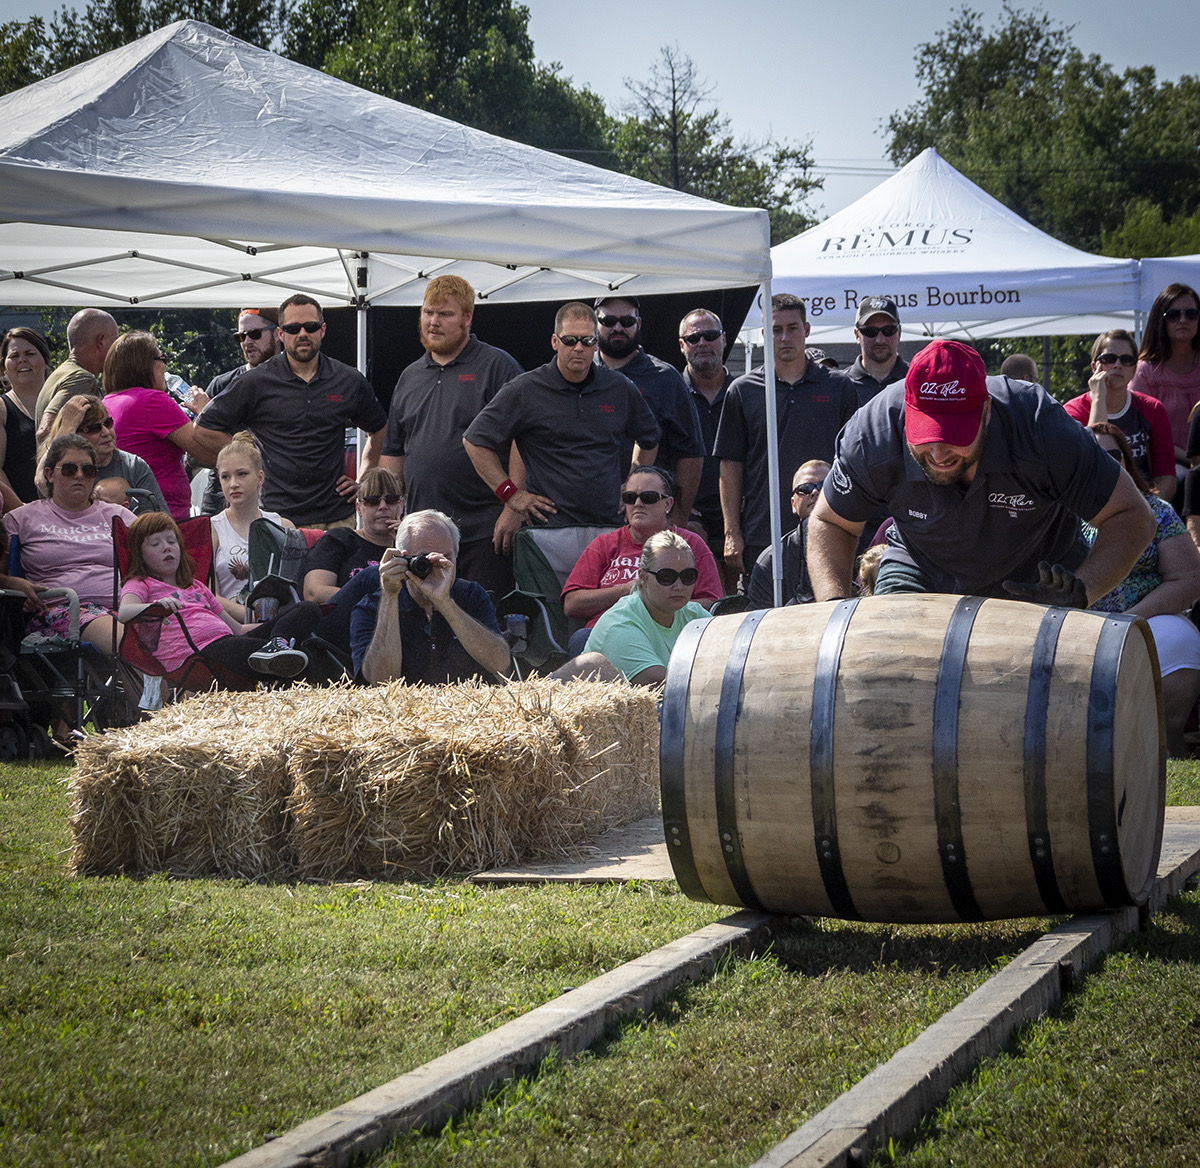 A member of the O.Z. Tyler barrel rolling team competes in the World Championship Bourbon Barrel Relay during the 2017 Kentucky Bourbon Festival. Photo ©2019, Mark Gillespie/CaskStrength Media.